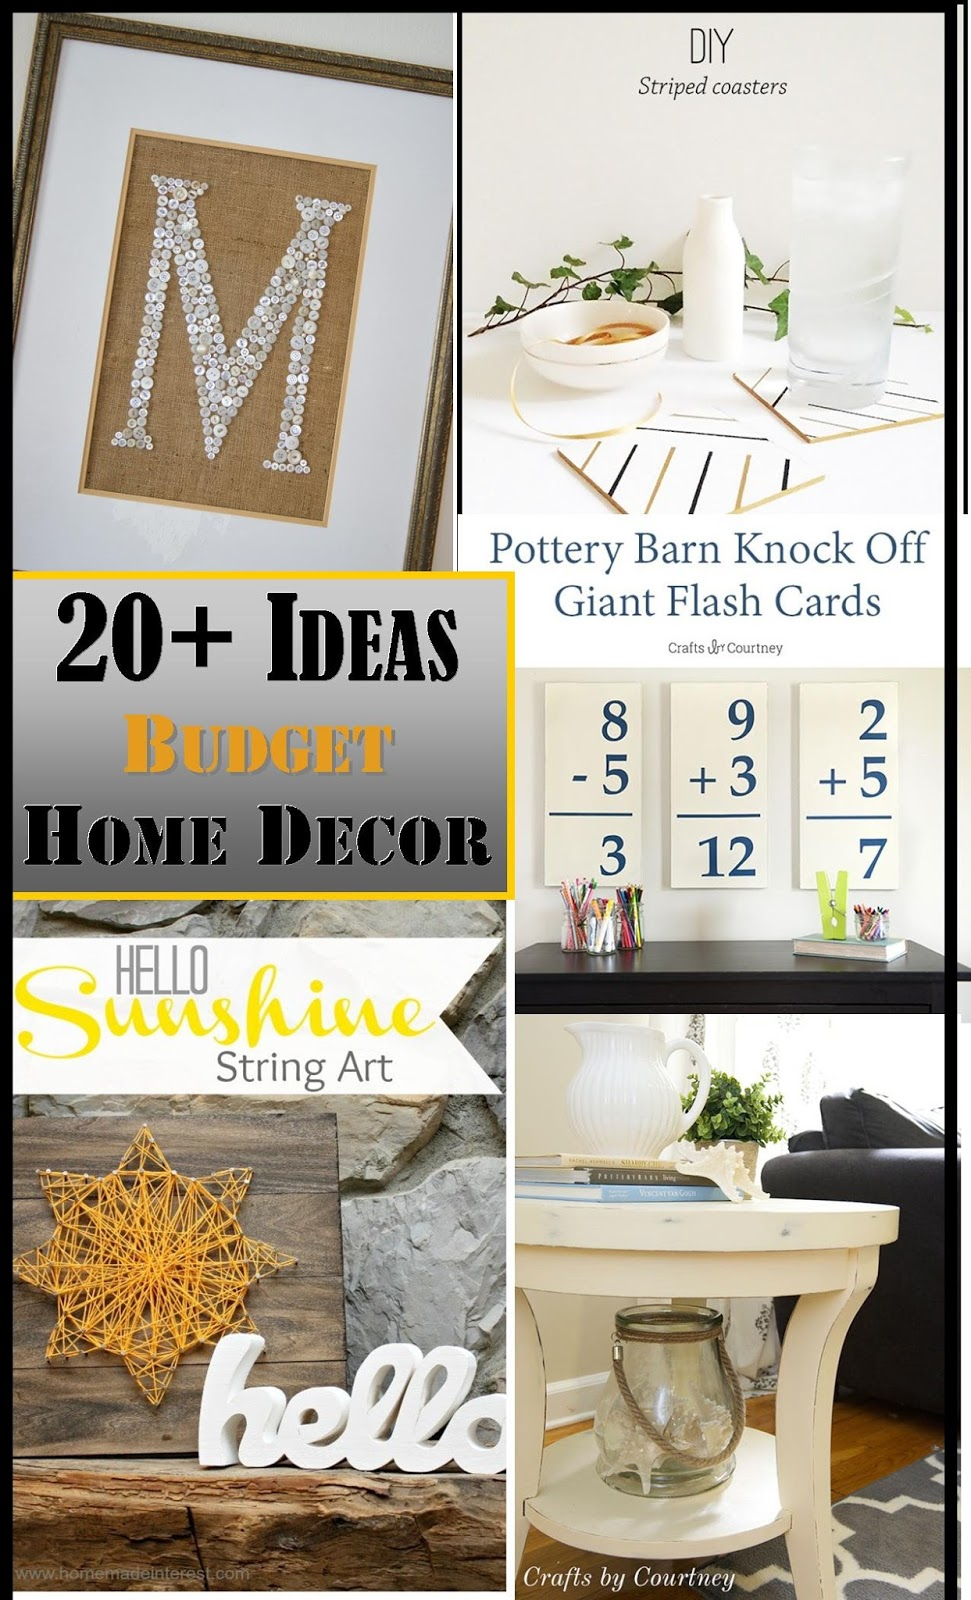 Decorating On a Budget Ideas plus The Creative Exchange Link Party ...